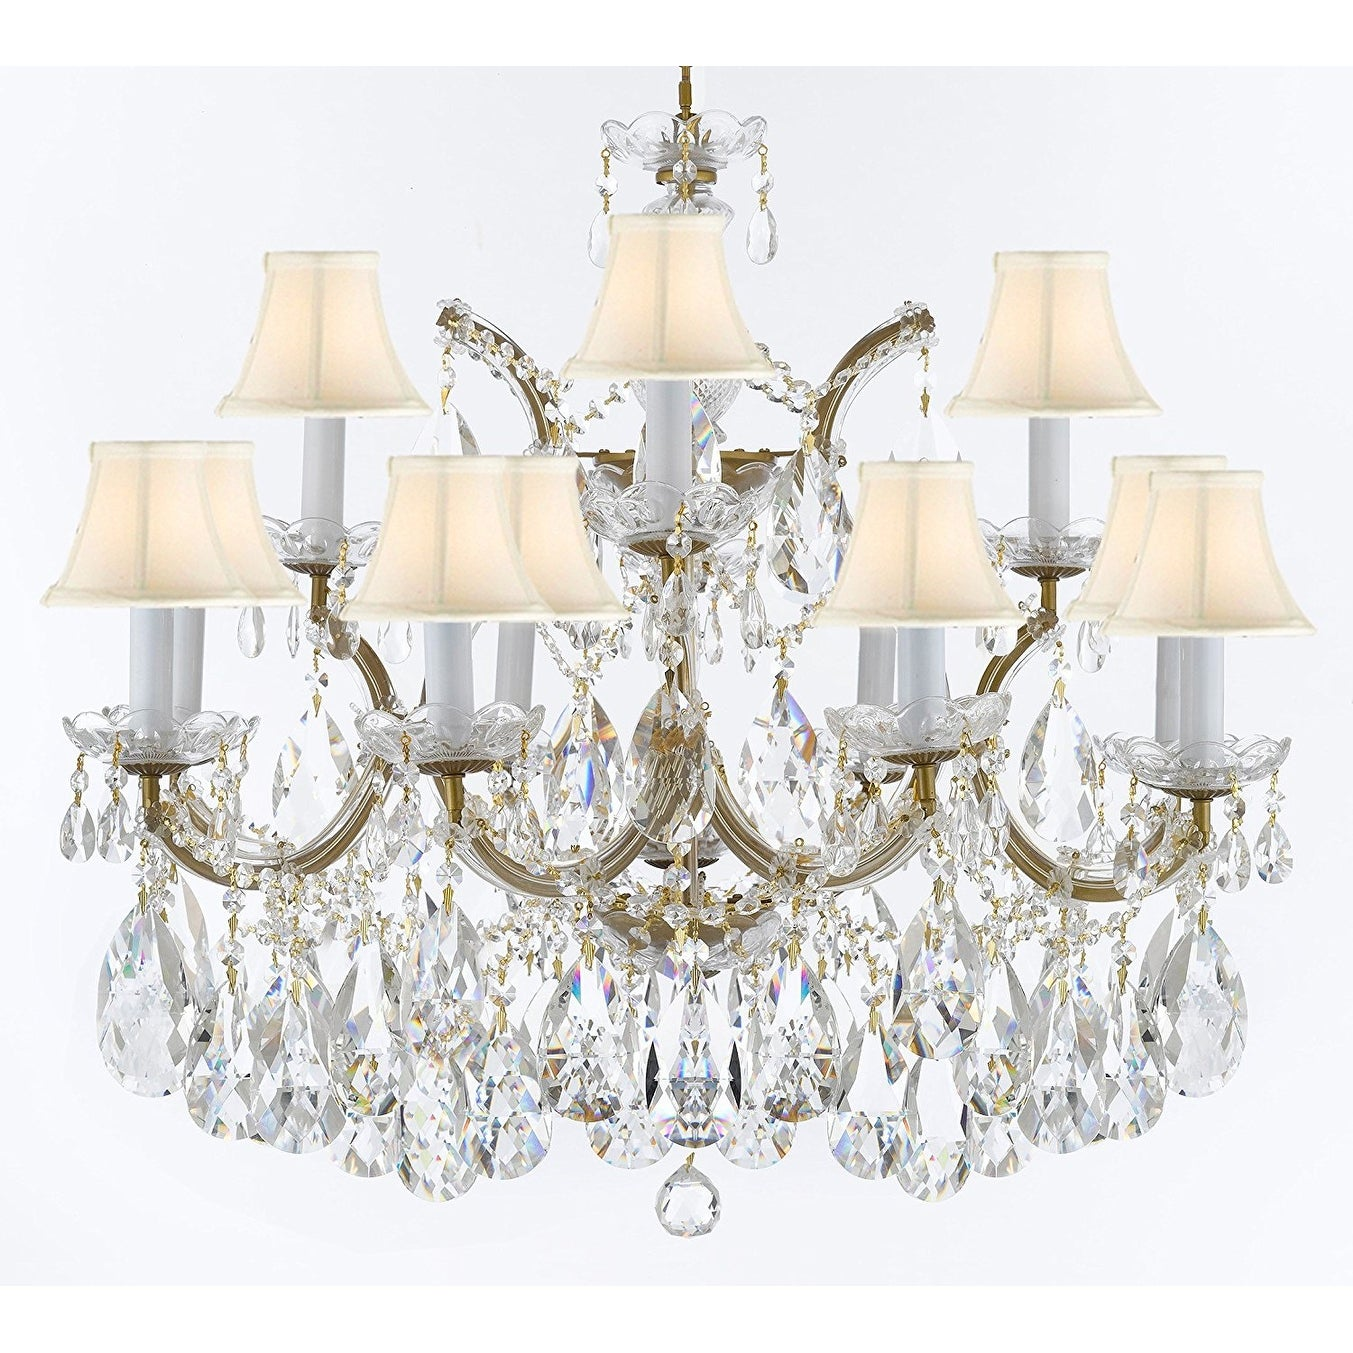 Image of: Shop Black Friday Deals On Maria Theresa Crystal Chandelier W Large Luxe Diamond Cut Crystals Overstock 18213639